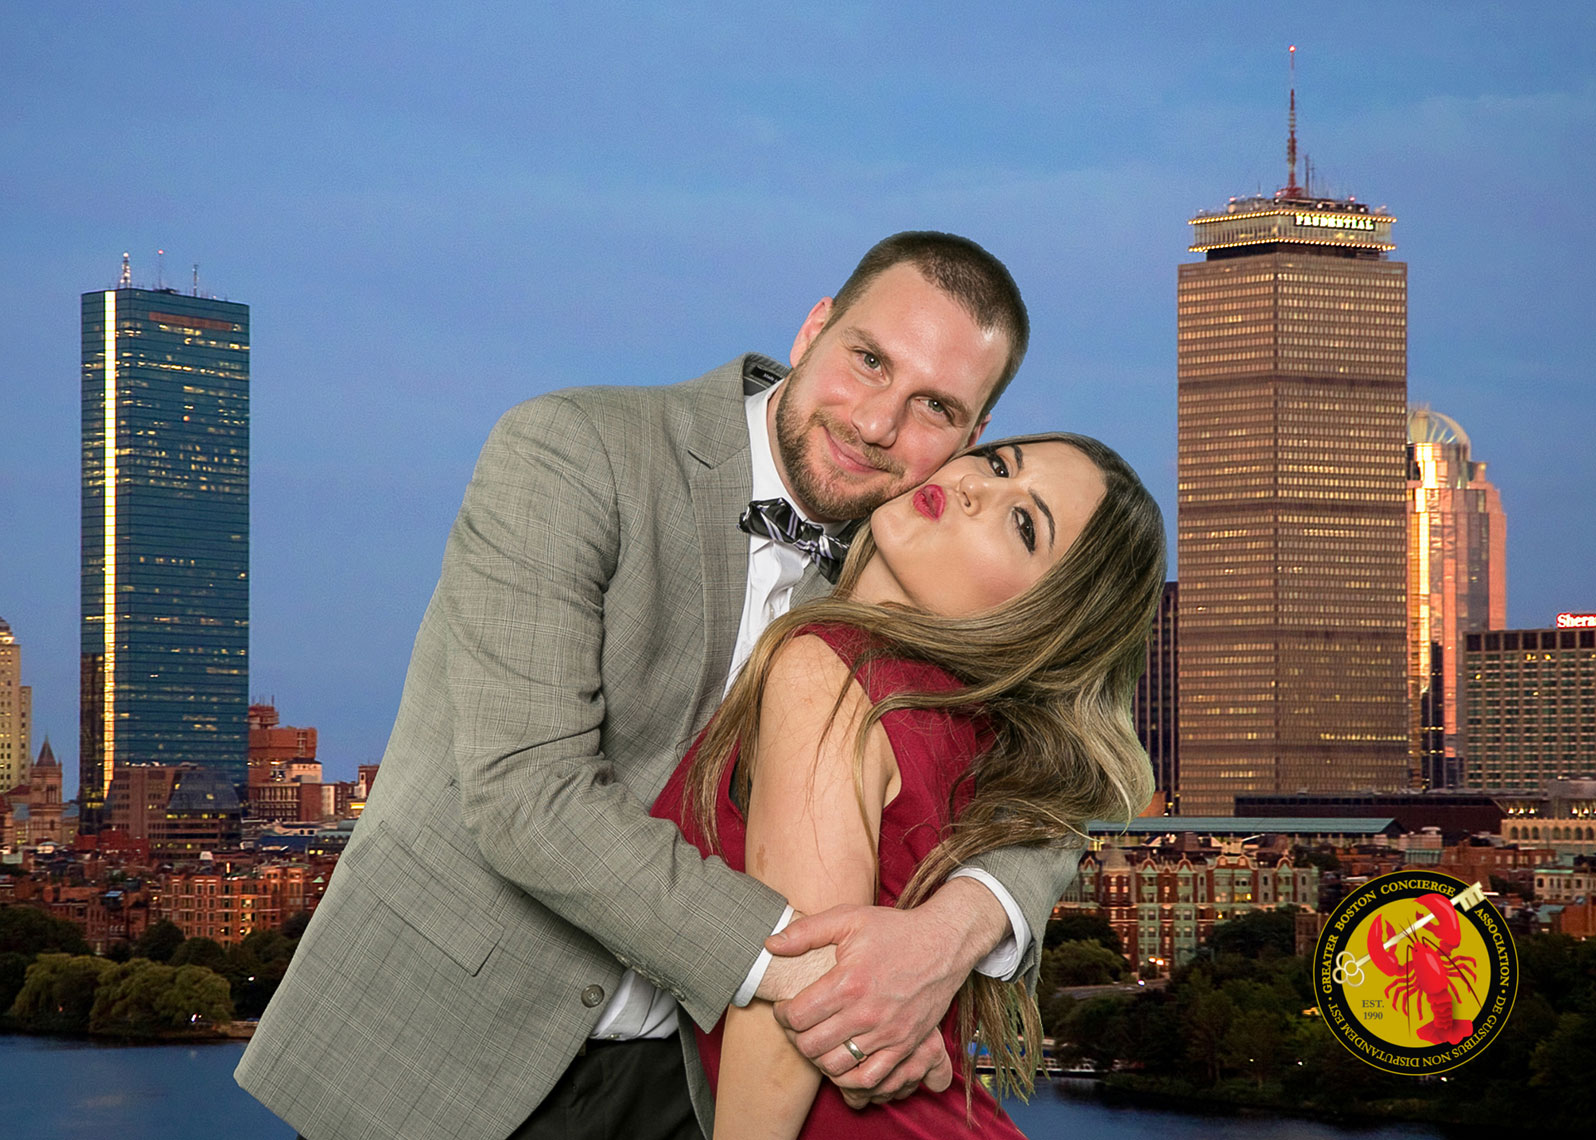 Green Screen Fun with Boston Background Added for GBCA